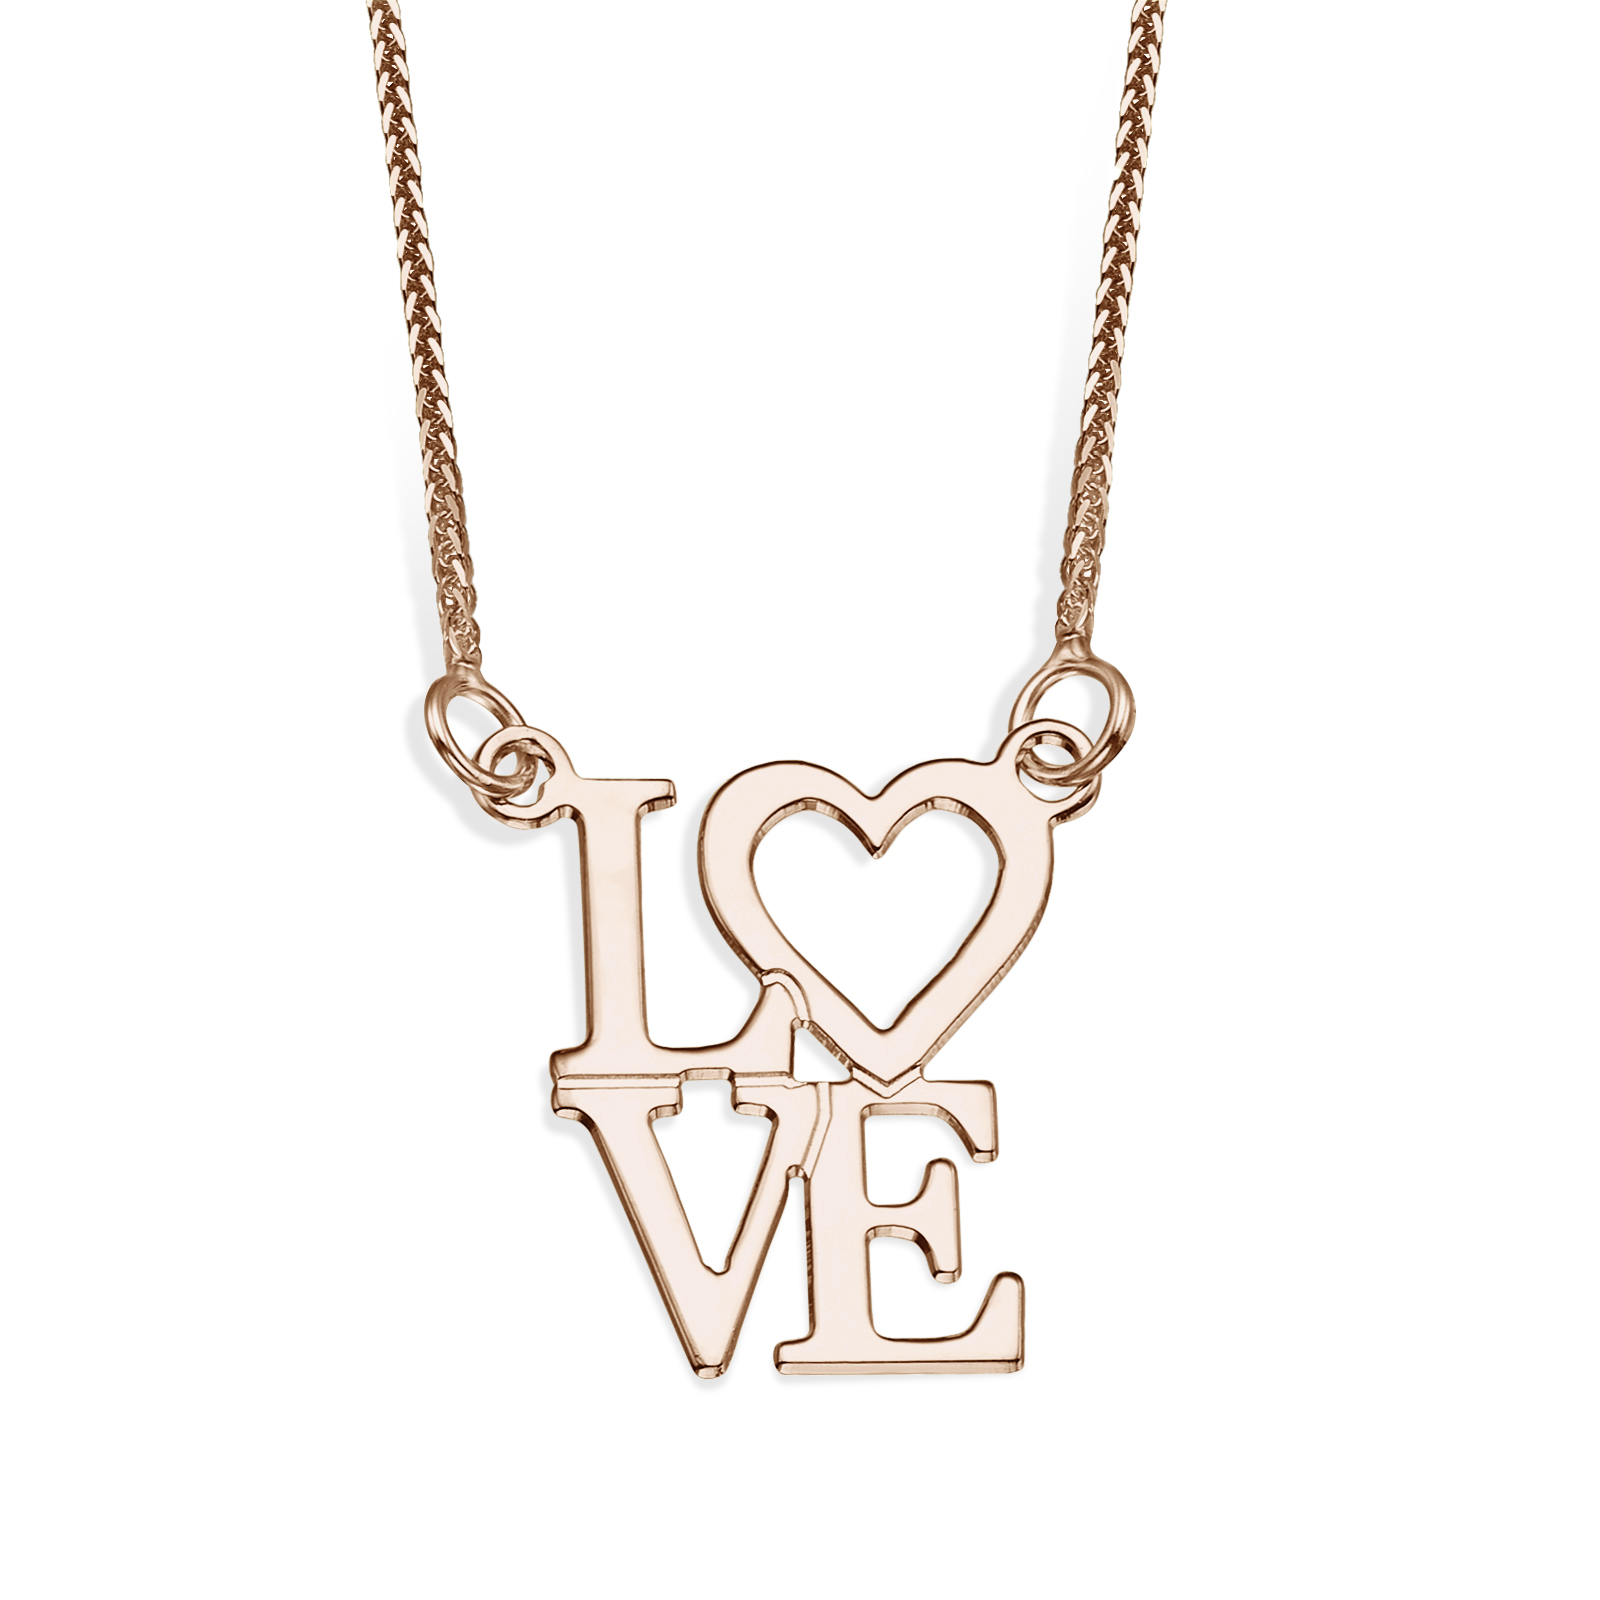 The world of jewelry a dictionary of terms youme gold jewelry jewelry of rose gold have a unique appearance that cant be ignored here at youme we have several pieces form rose gold for example our love pendant aloadofball Choice Image